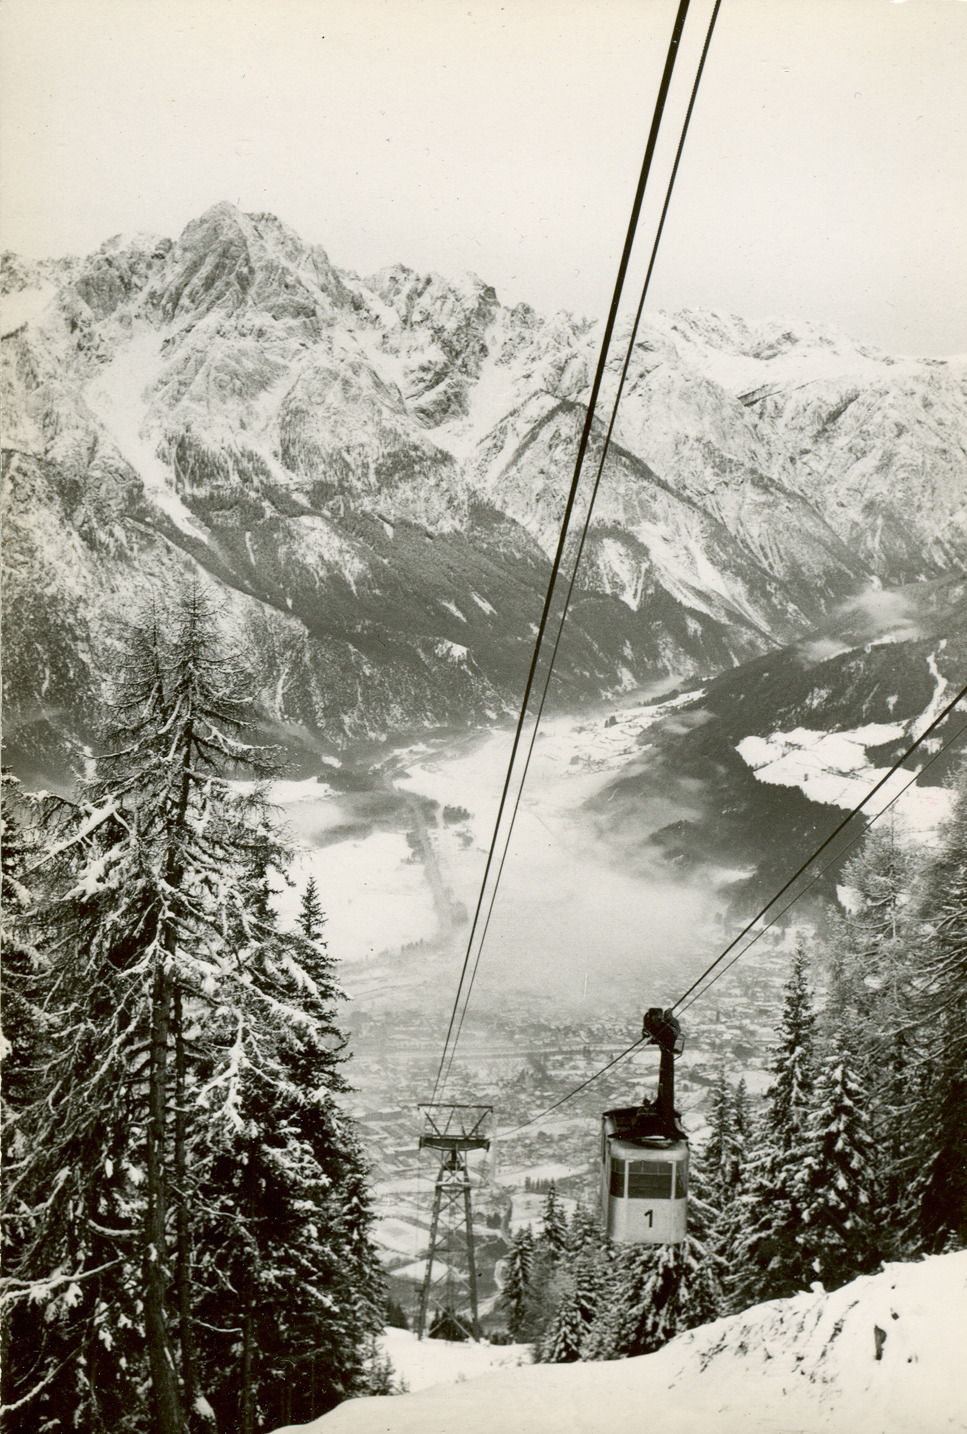 The Zettersfeld ski area in Lienz, Austria, 1958.